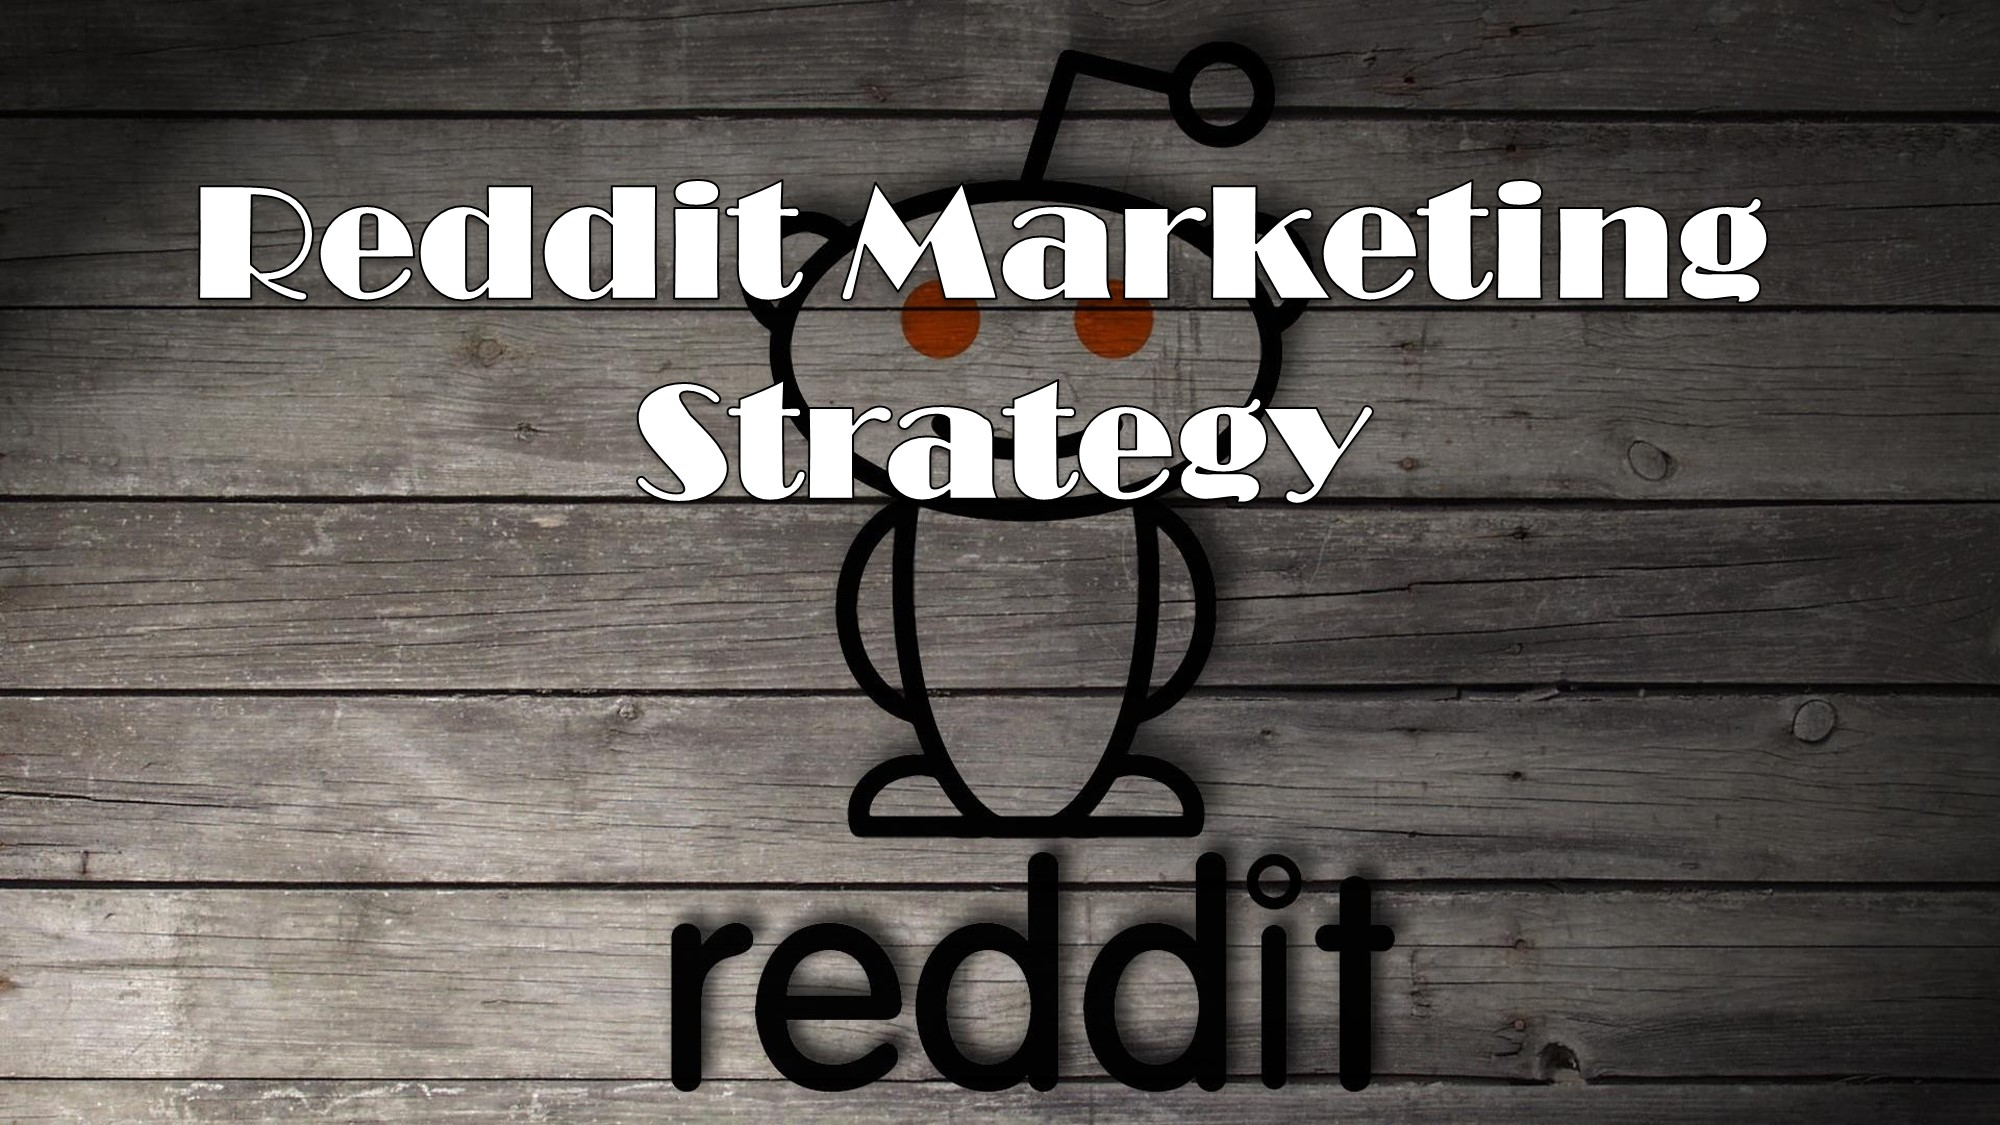 Reddit Marketing Strategy